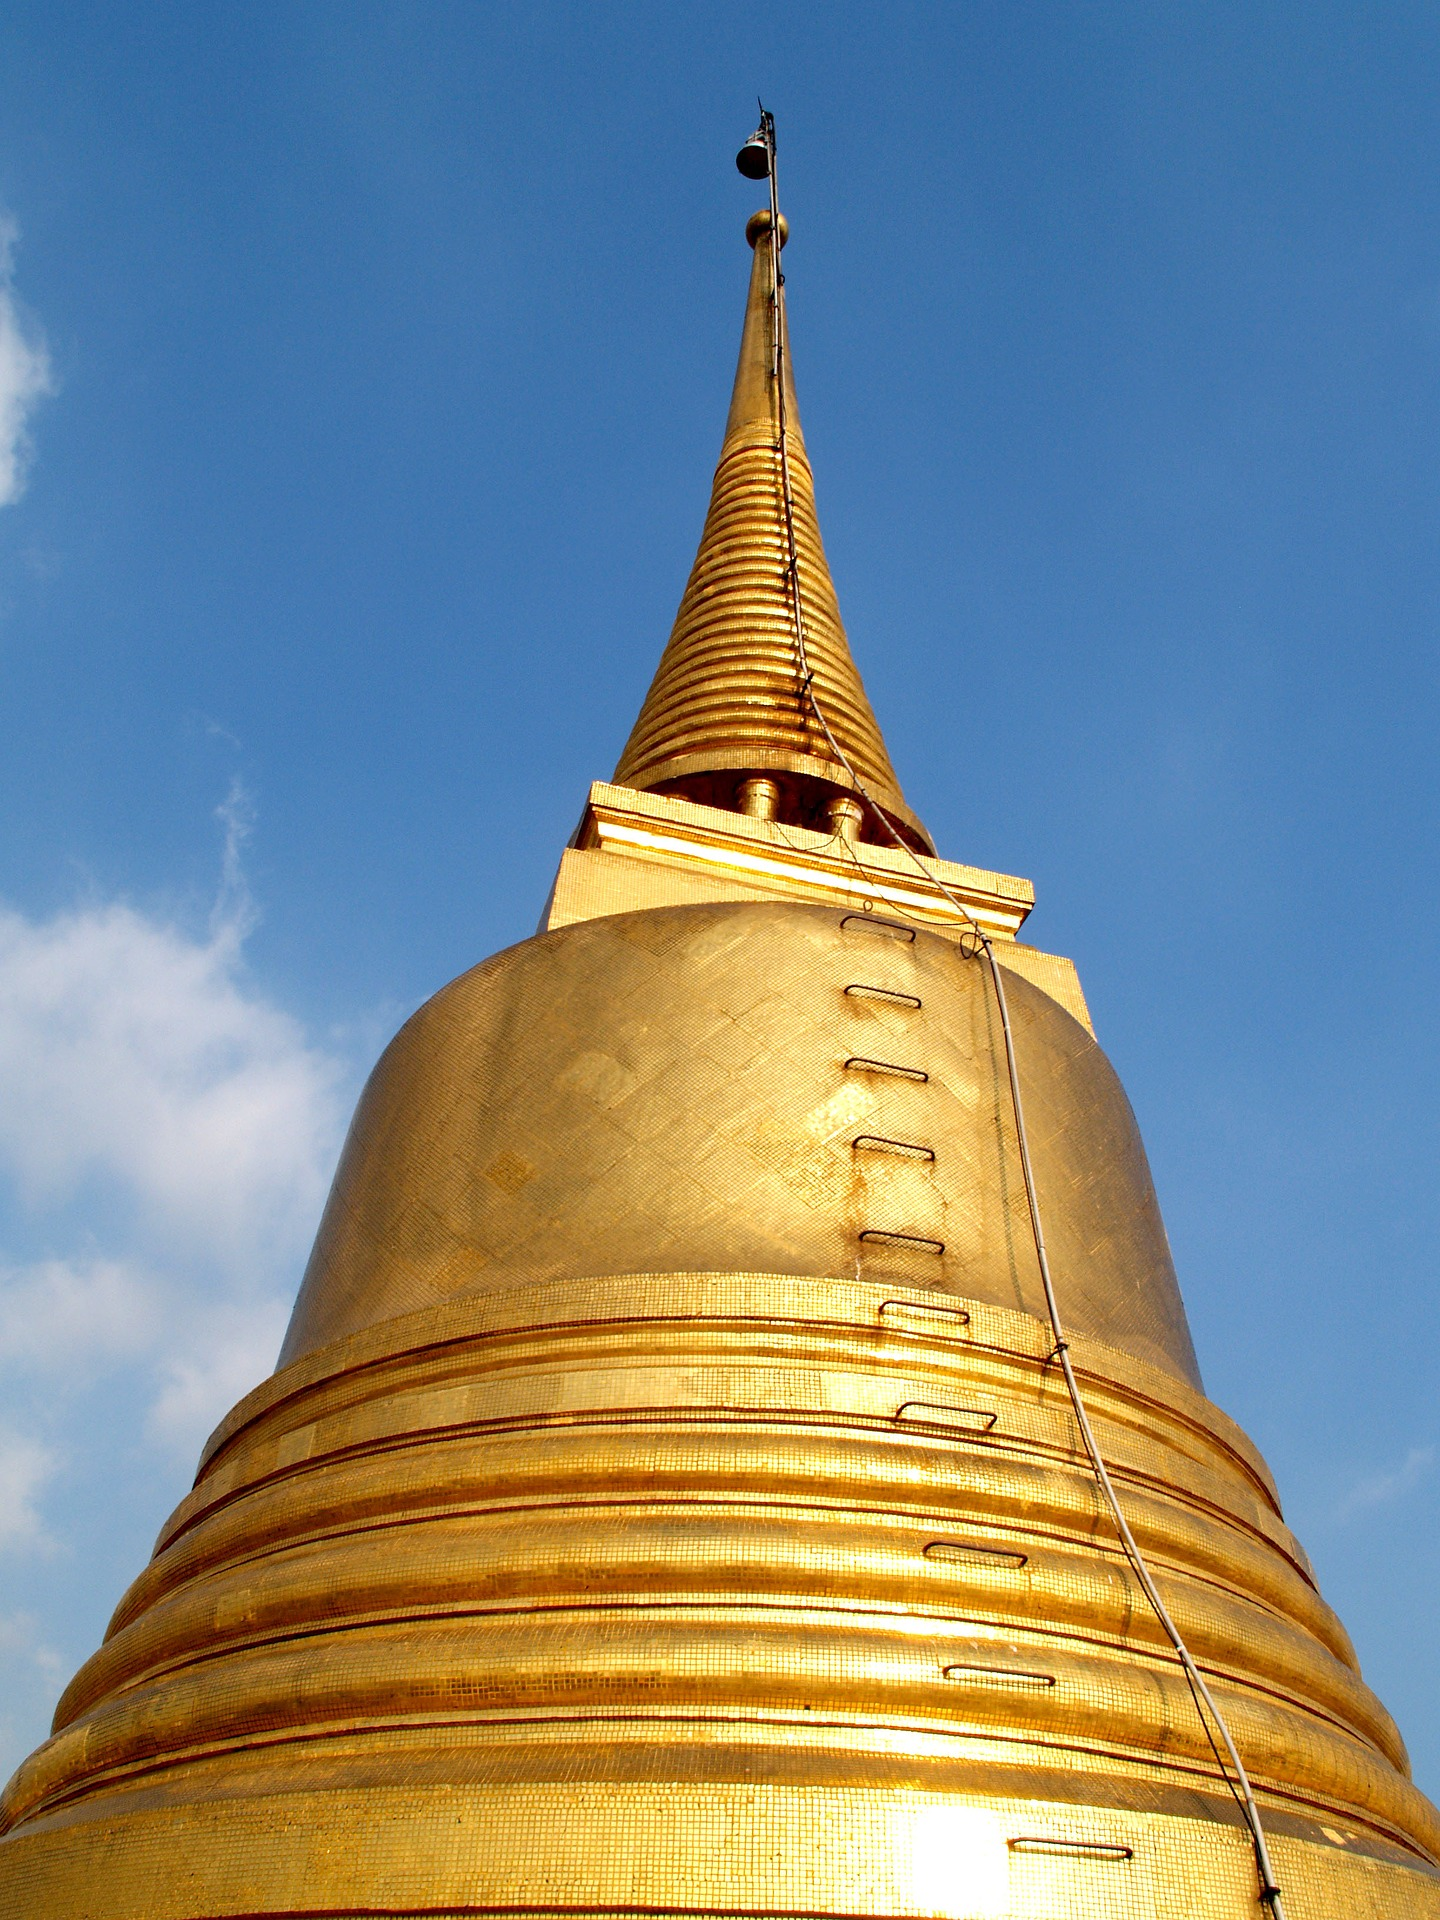 The top of Wat Saket, located at the top of the Golden Mountain